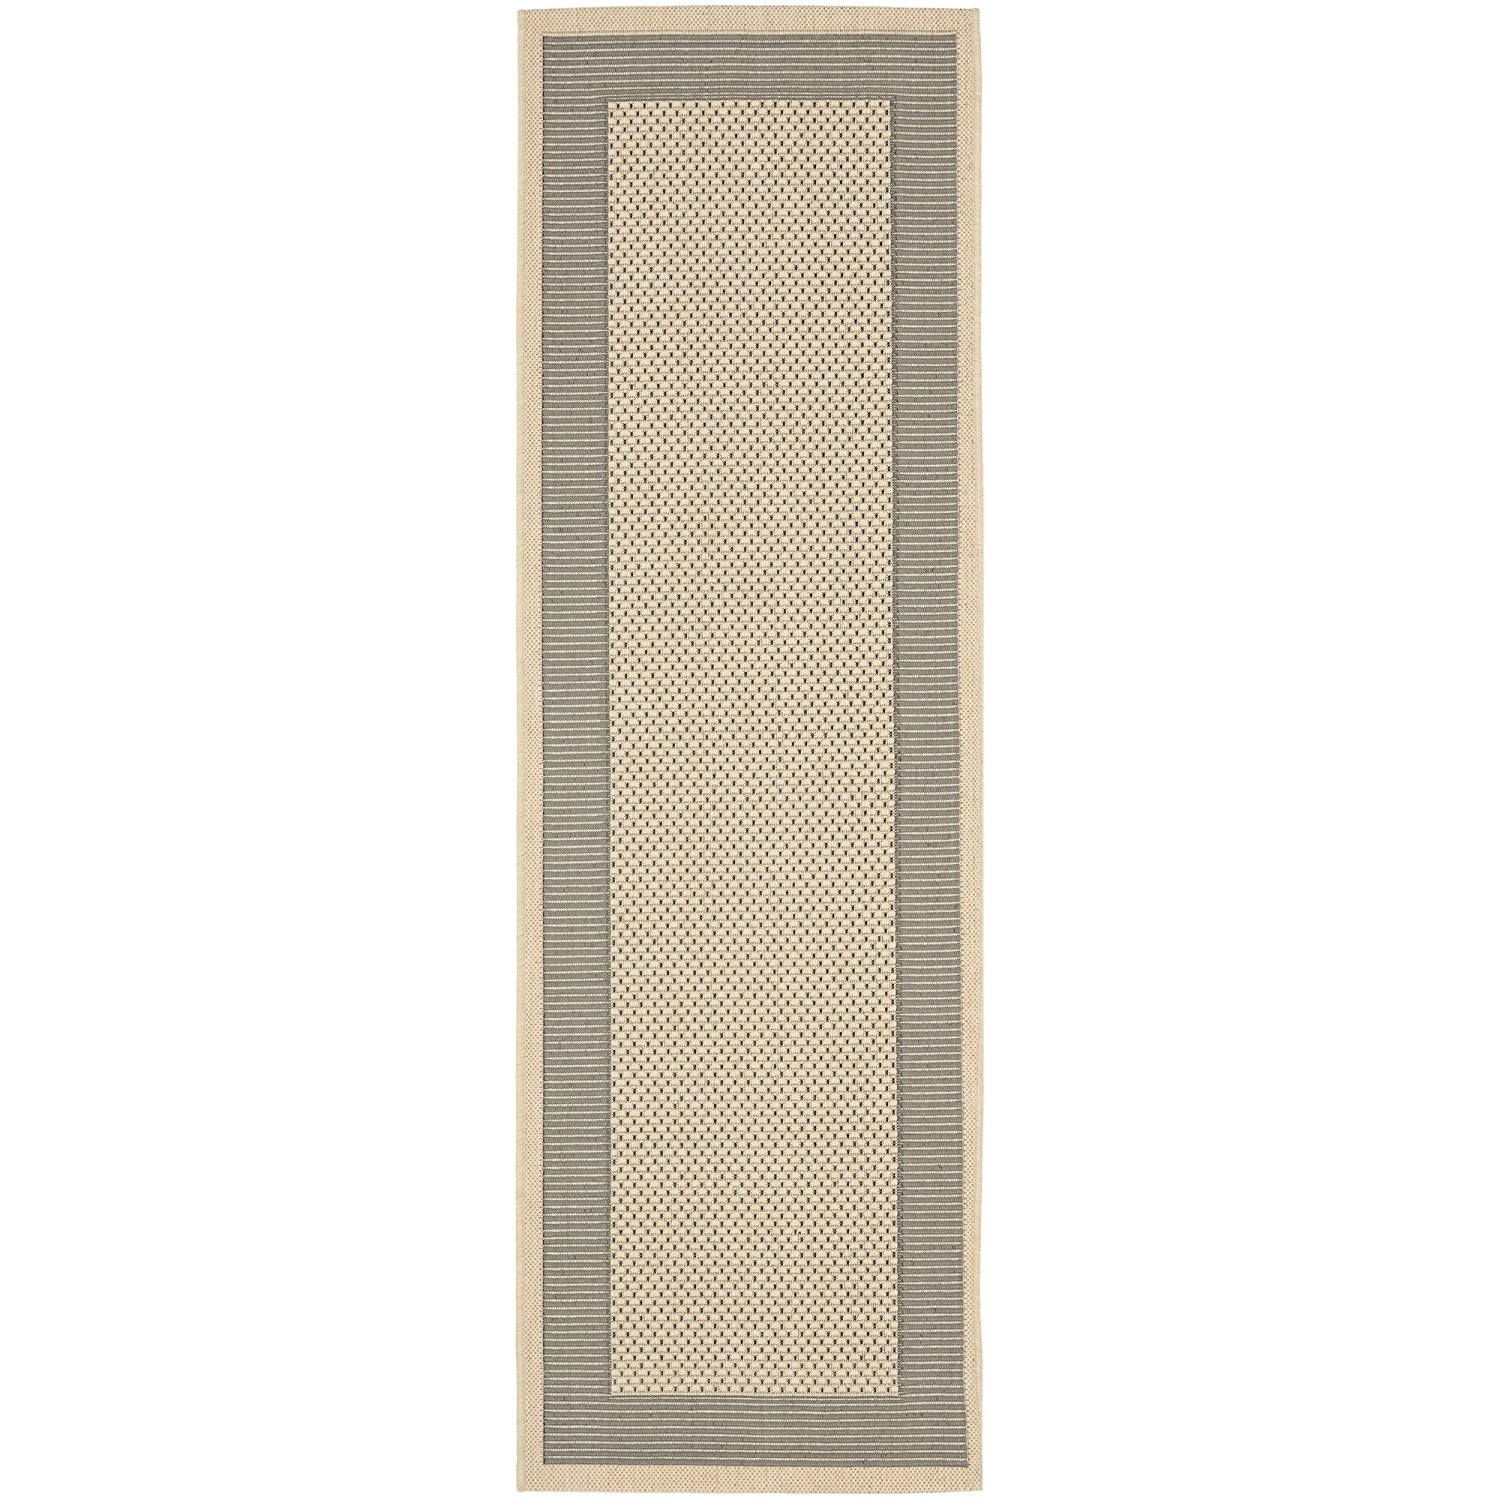 """Safavieh Courtyard Collection CY7987-65A5 Grey and Cream Indoor/ Outdoor Runner (2'3"""" x 8')"""